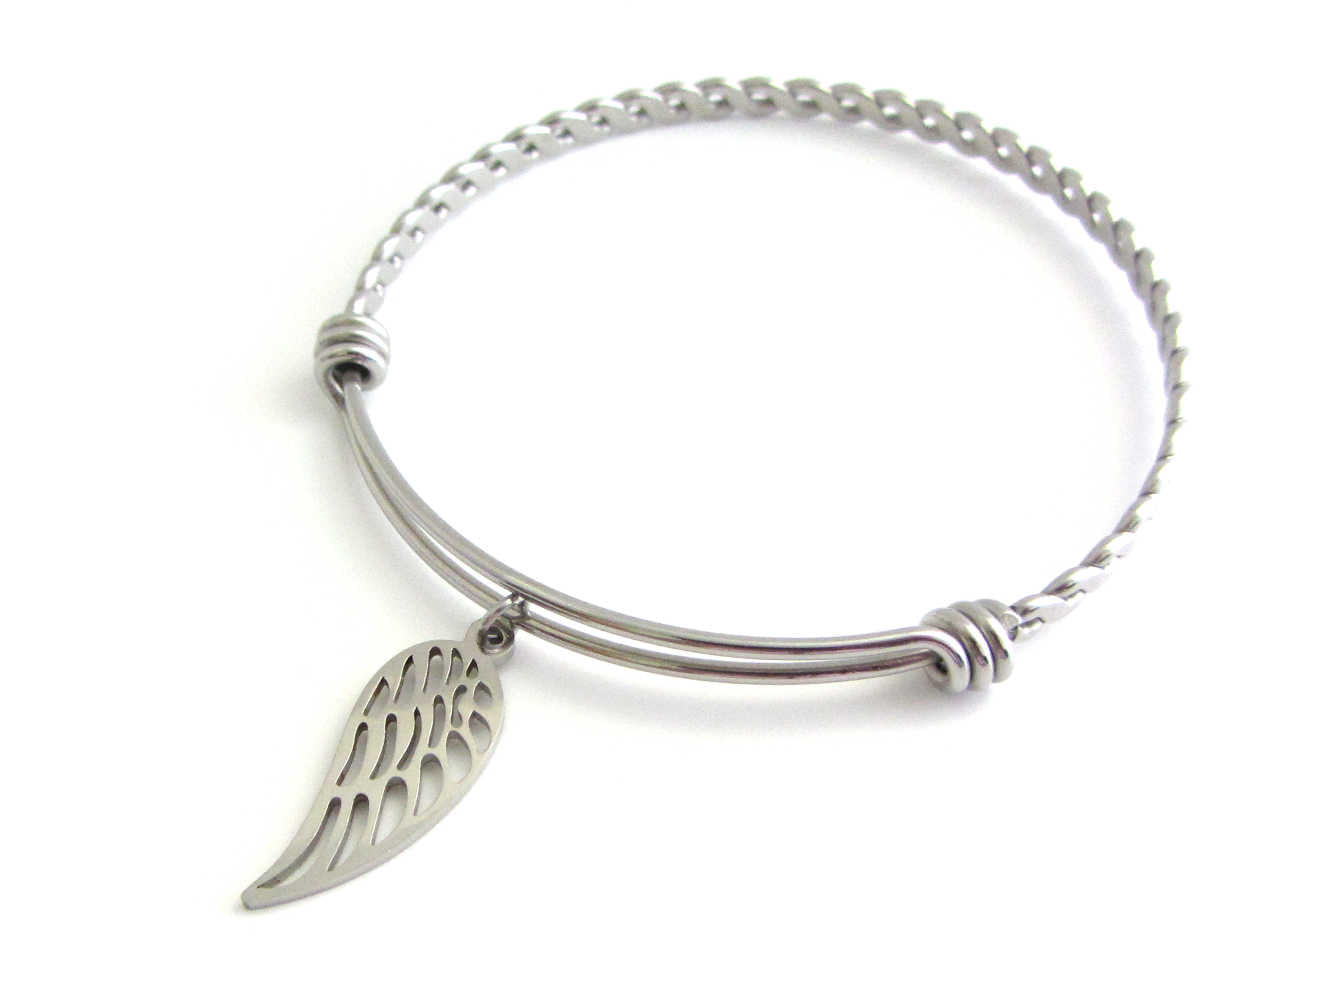 stainless steel single angel wing charm on a bangle with braided twist pattern